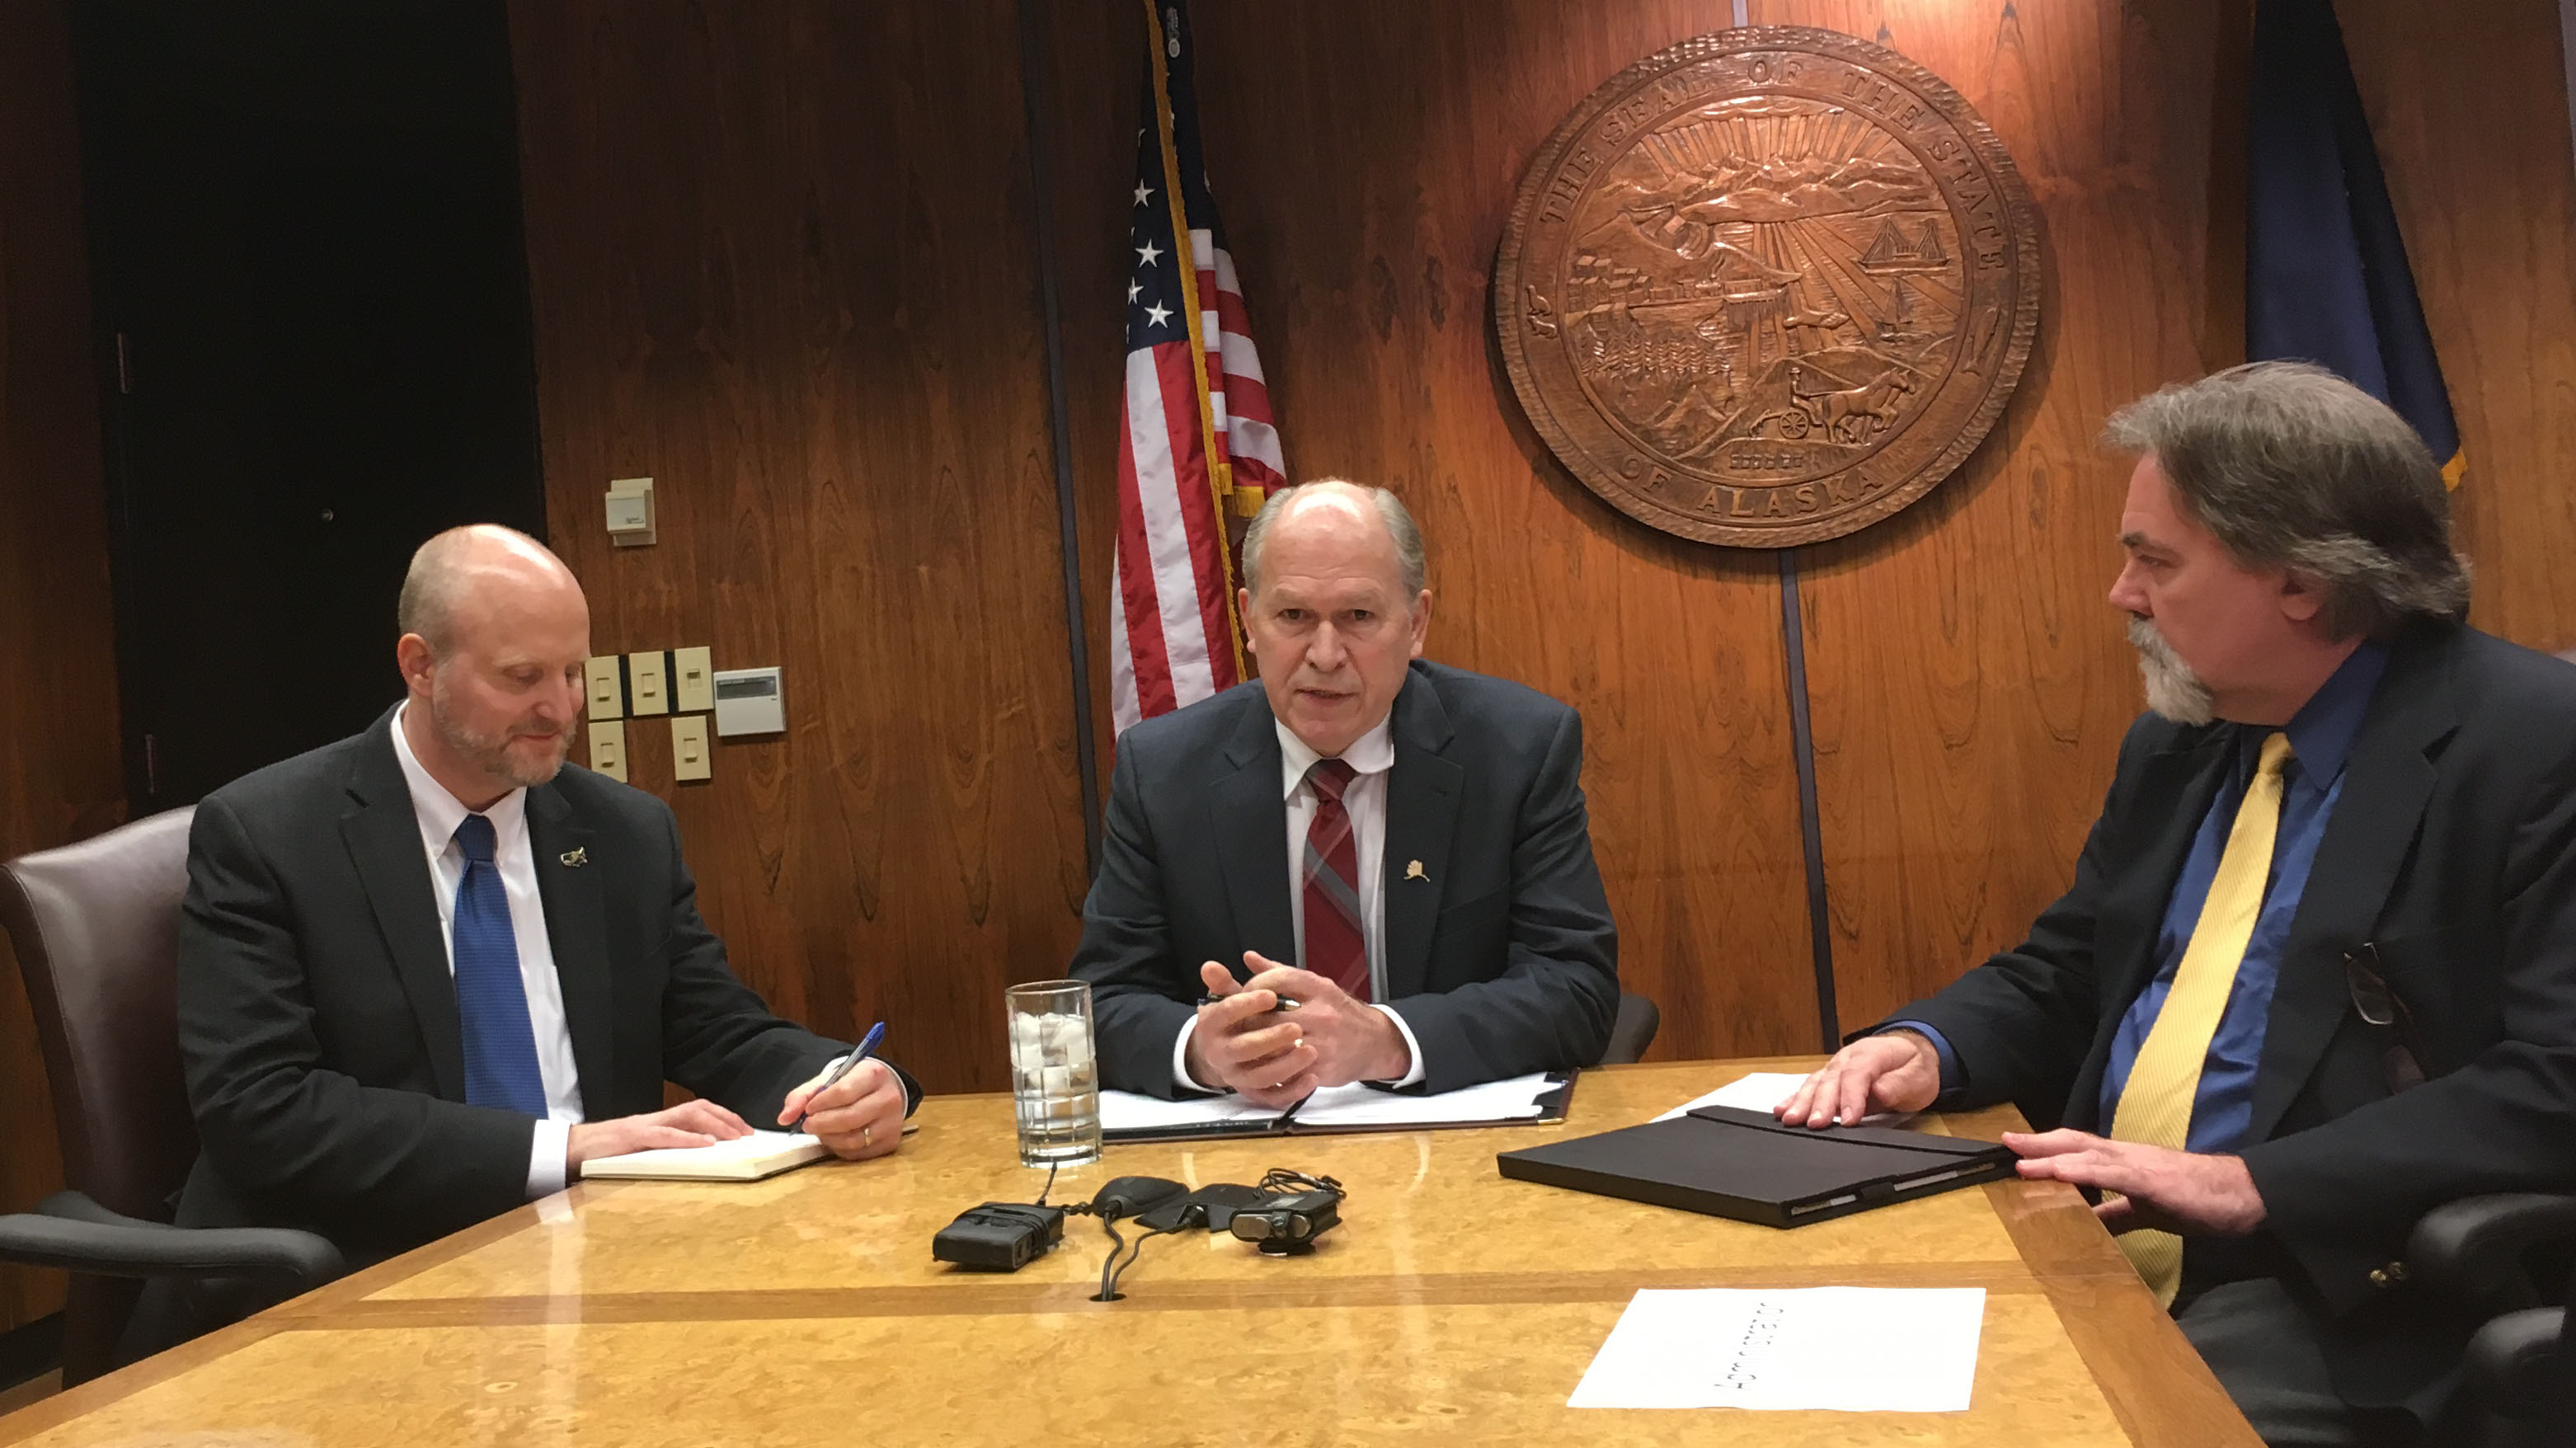 Gov. Bill Walker, flanked by Tax Division Director Ken Alper and Revenue Commissioner Randall Hoffbeck. Walker discussed oil and gas tax credits. (Photo by Andrew Kitchenman/KTOO)